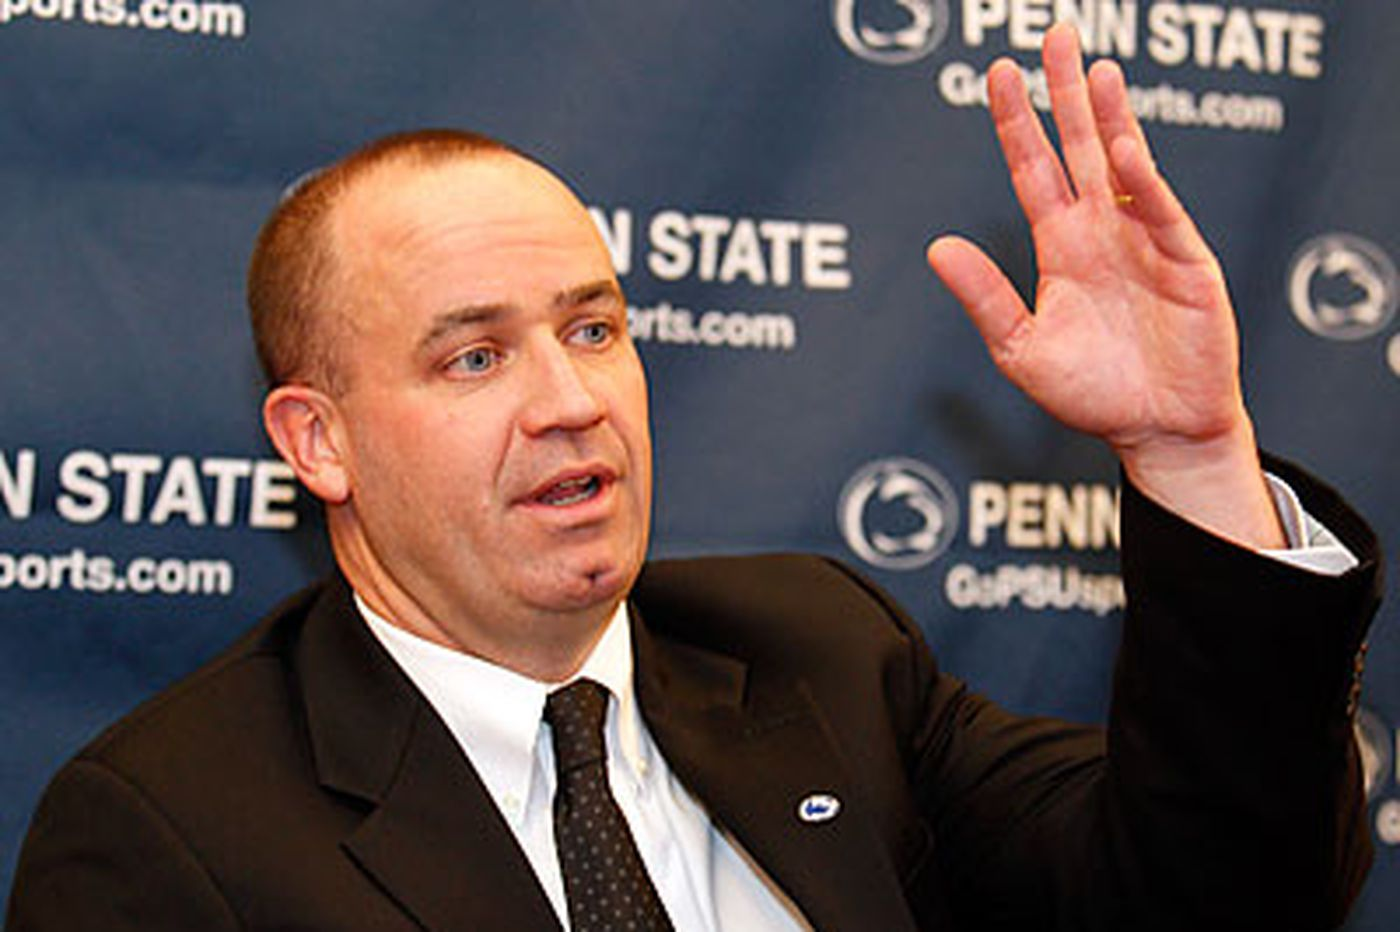 Penn State's O'Brien starts recruiting trip in Philly area